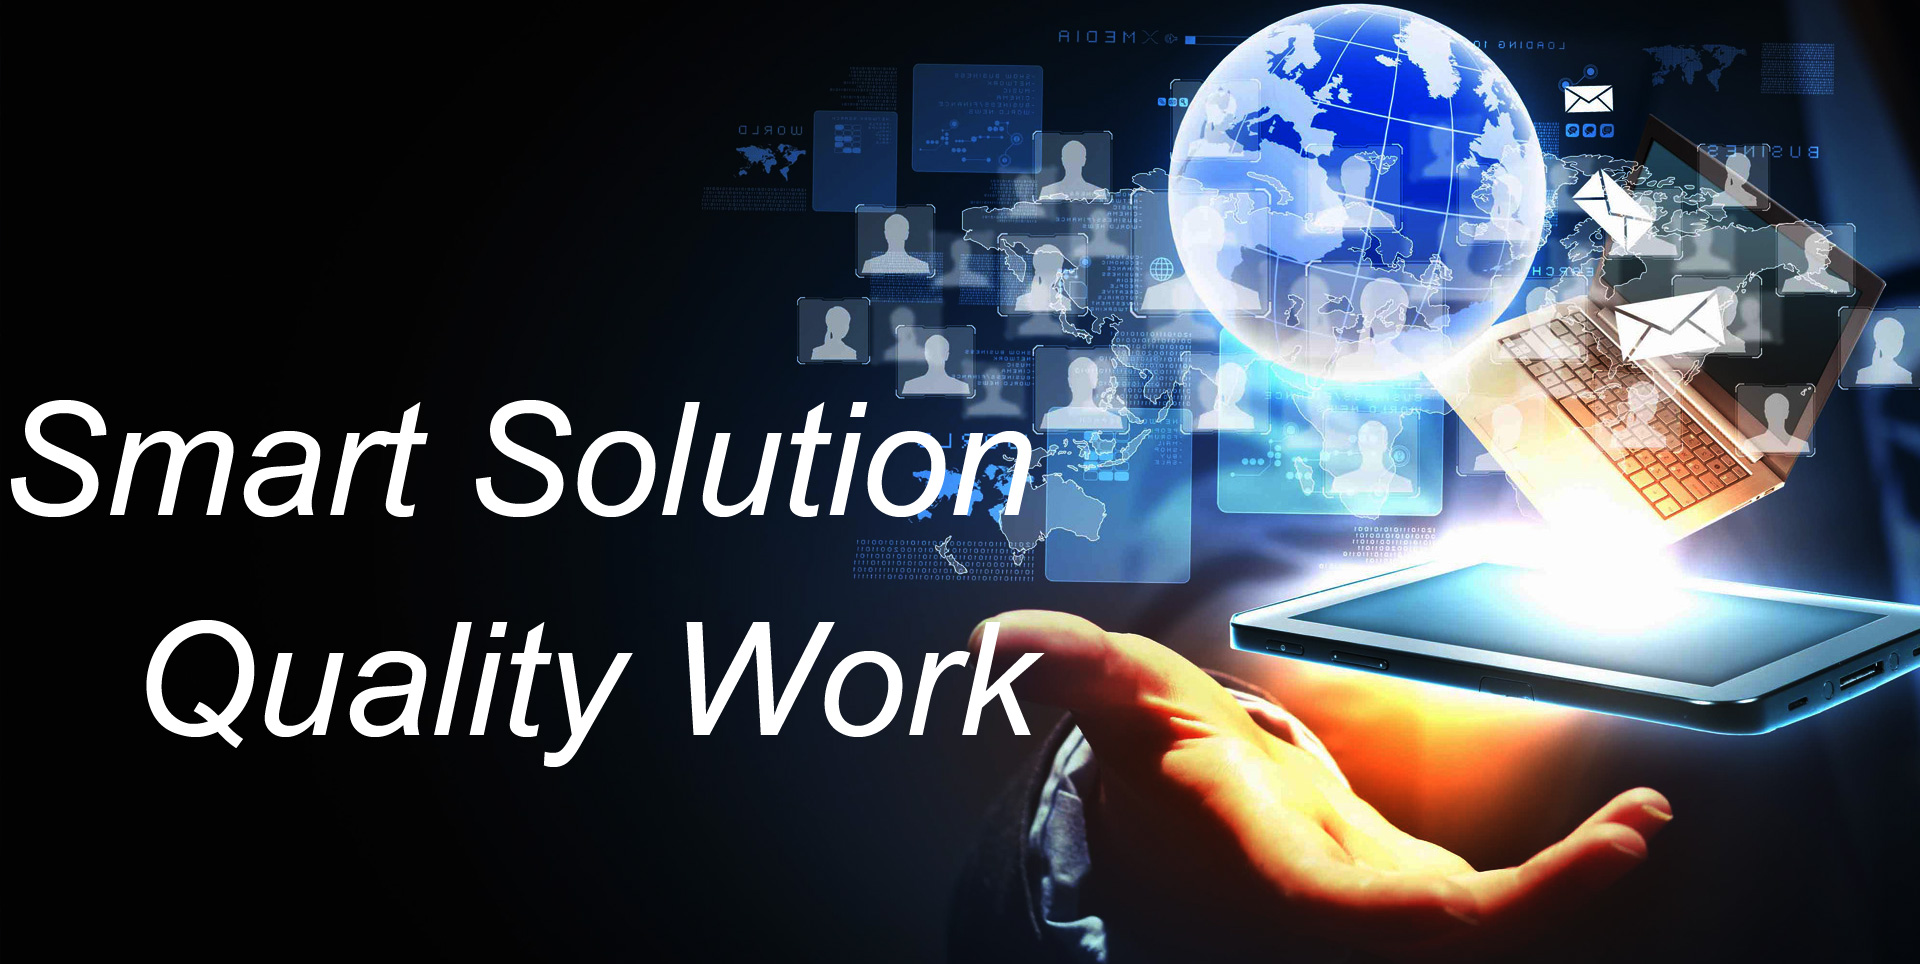 e75ee1d76 CREATIVE WEB SOLUTIONS End of your search!!! You are at EWS, the prime  solution provider for IT Enabled Service. Our clients come to us for our  creativity, ...